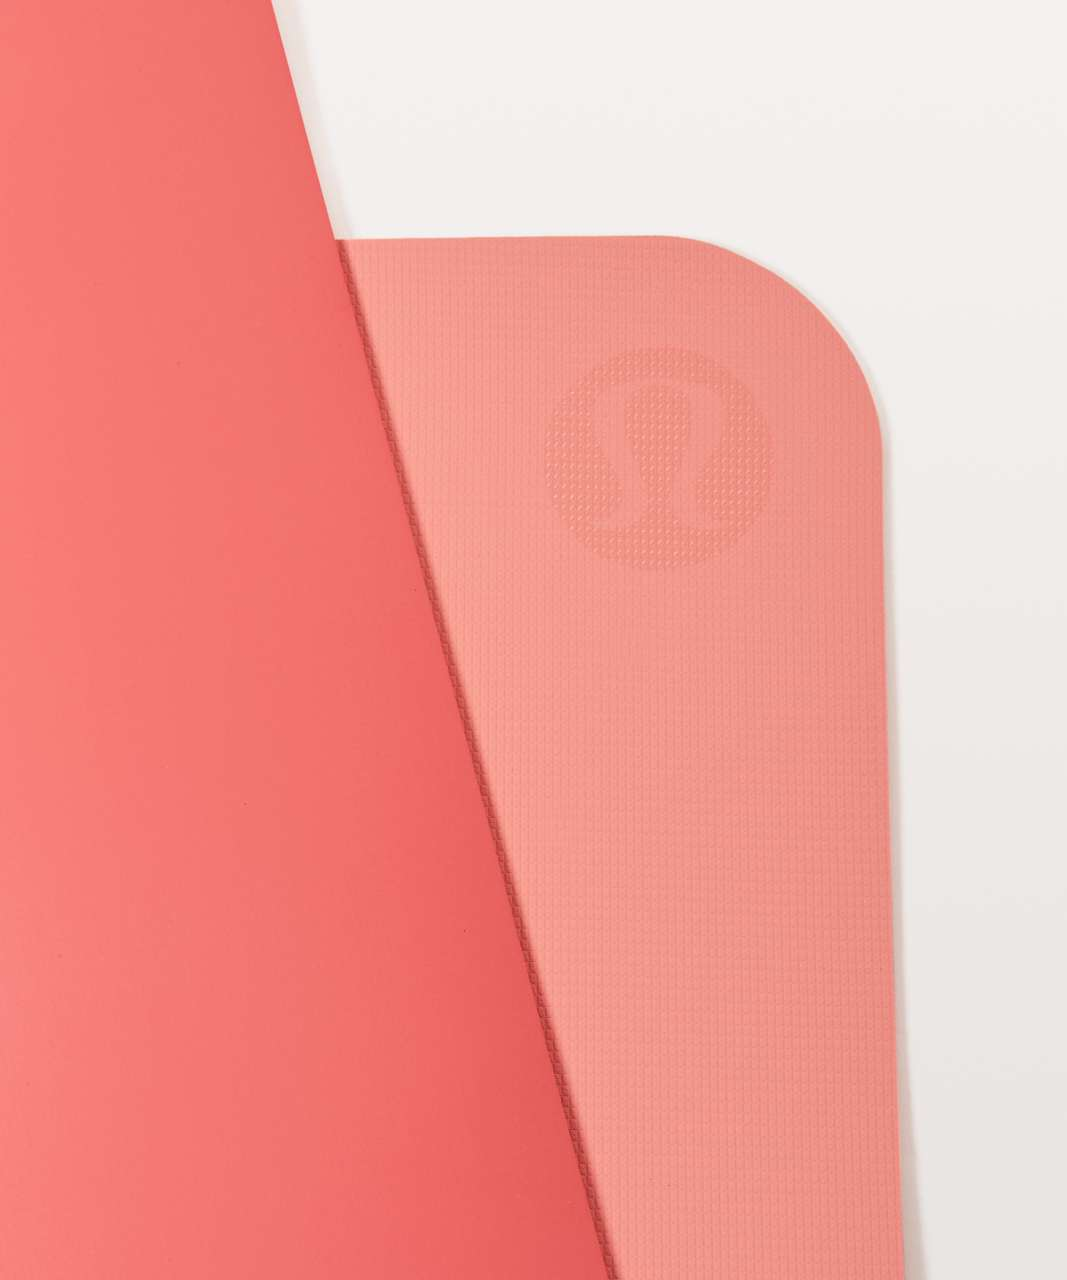 Lululemon The Reversible Mat 5mm - Cape Red / Sunny Coral